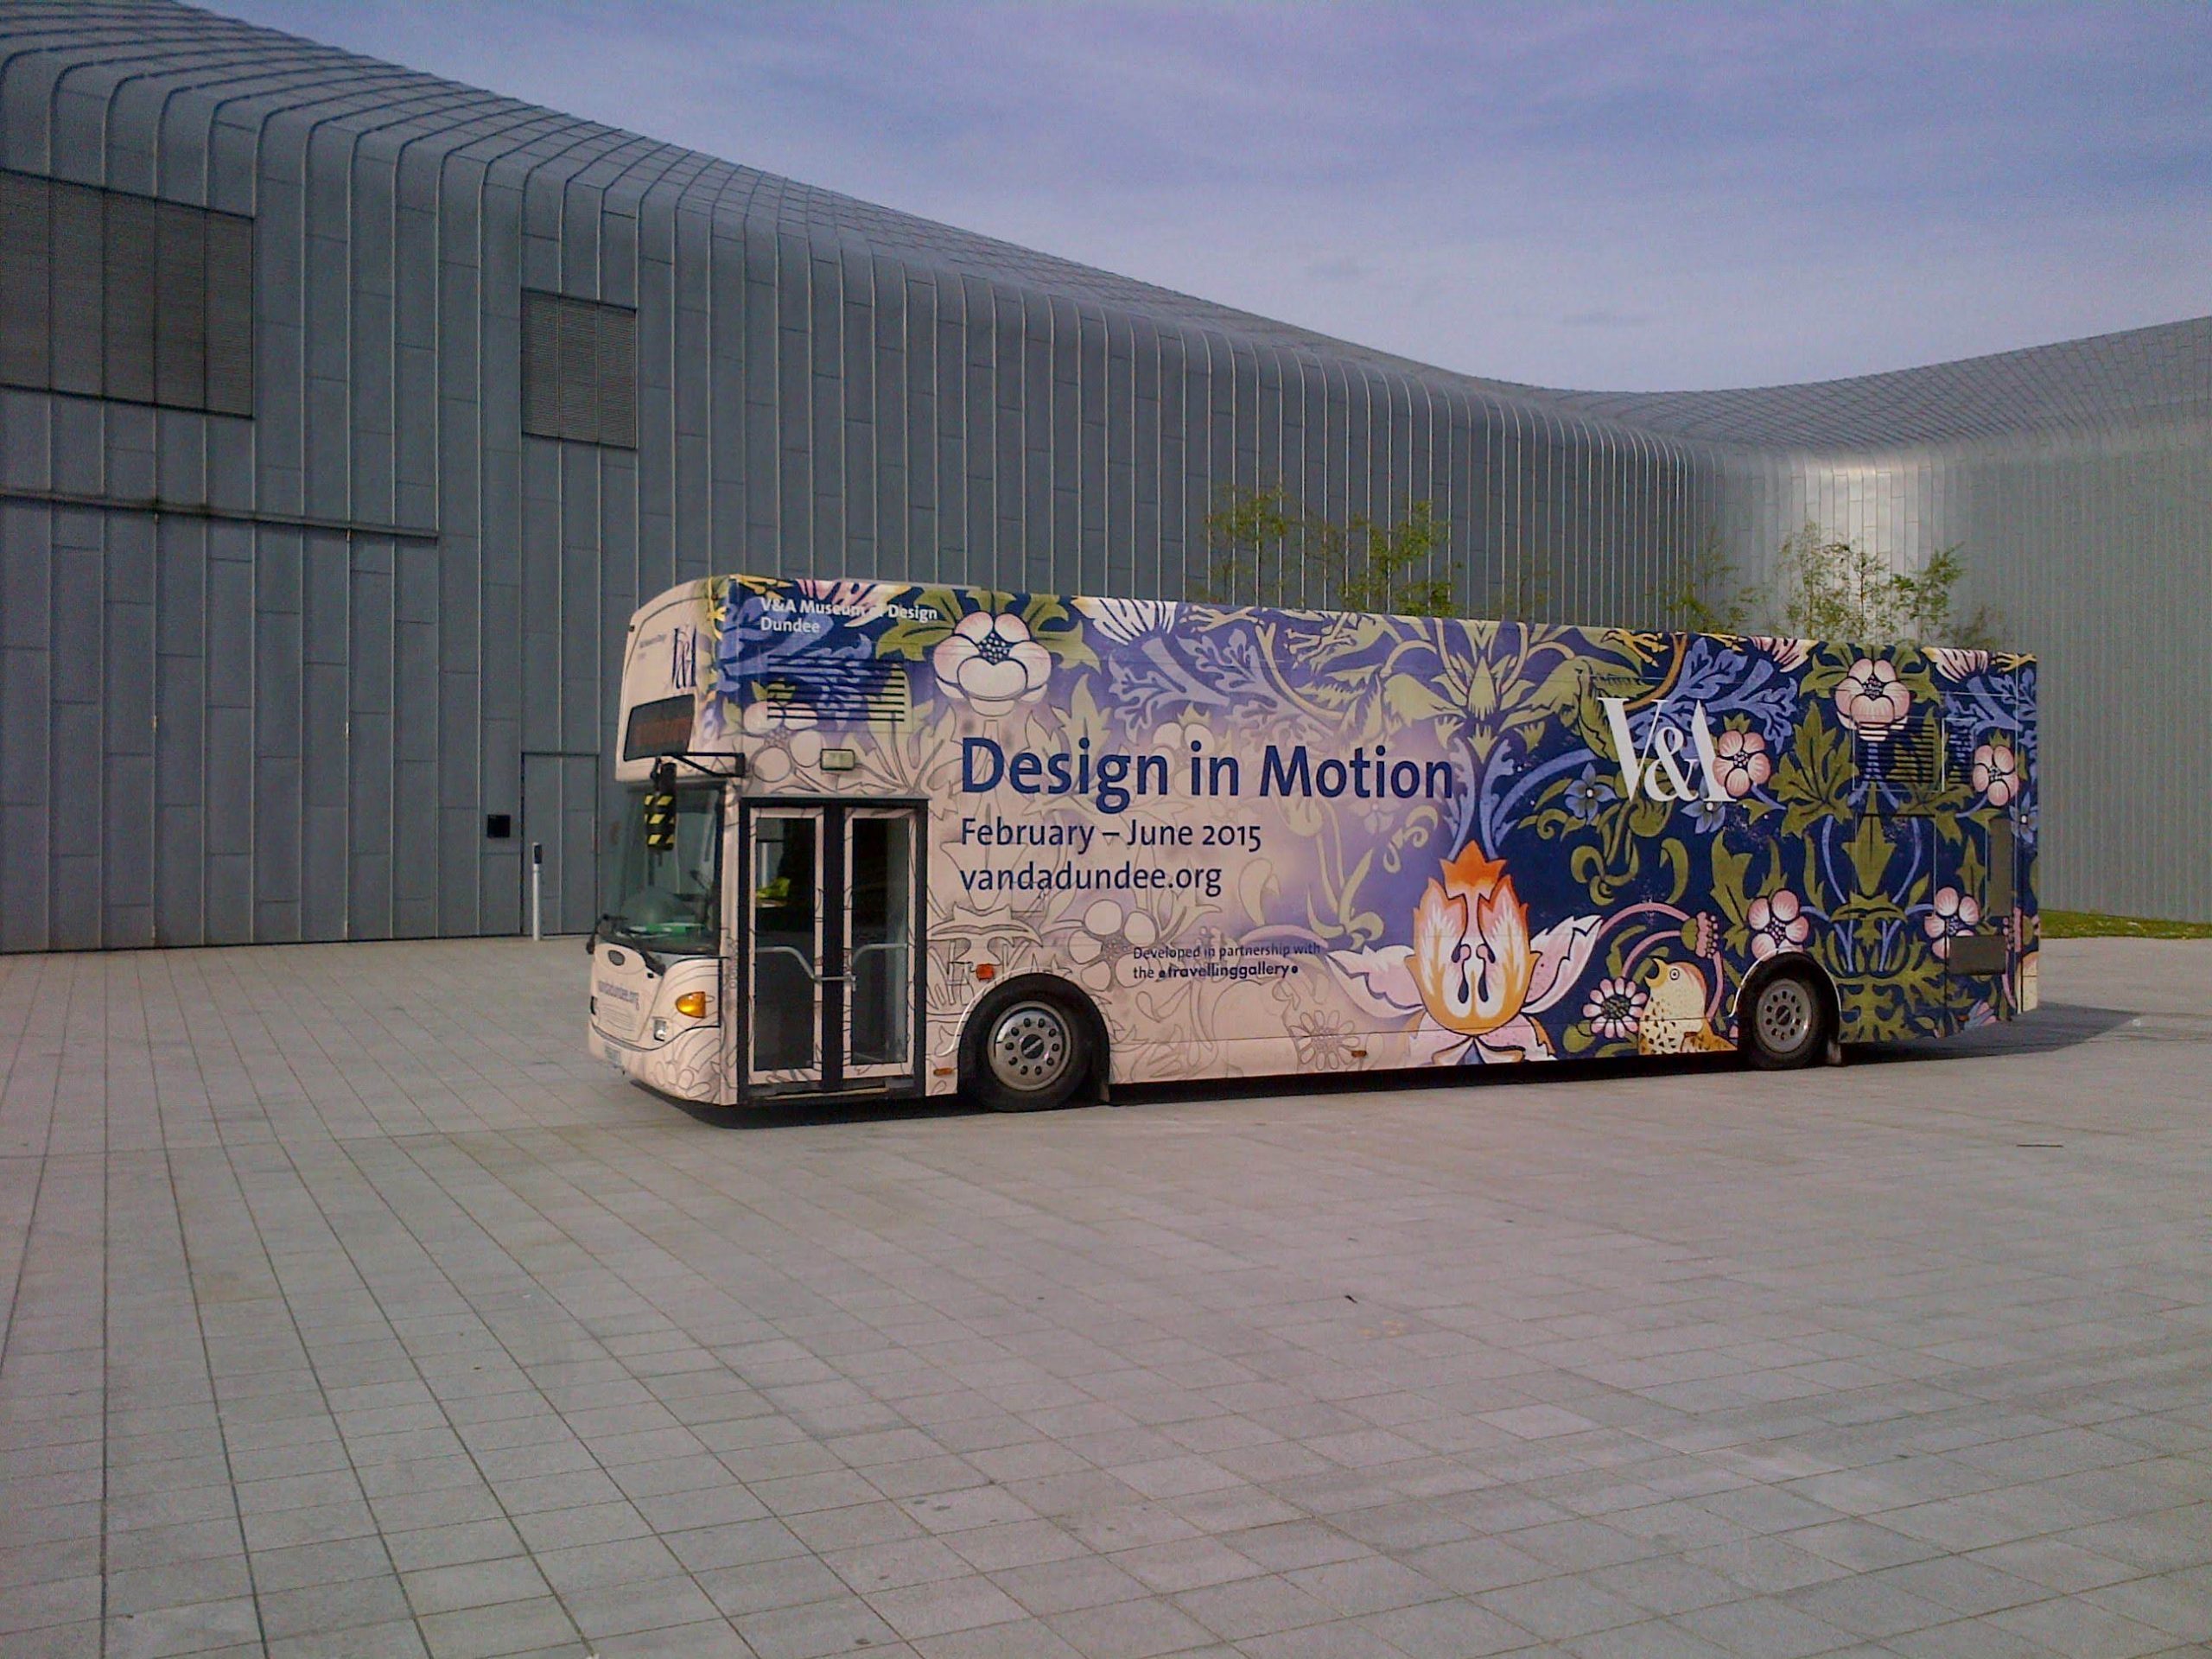 Gallery bus with Design in Motion exterior